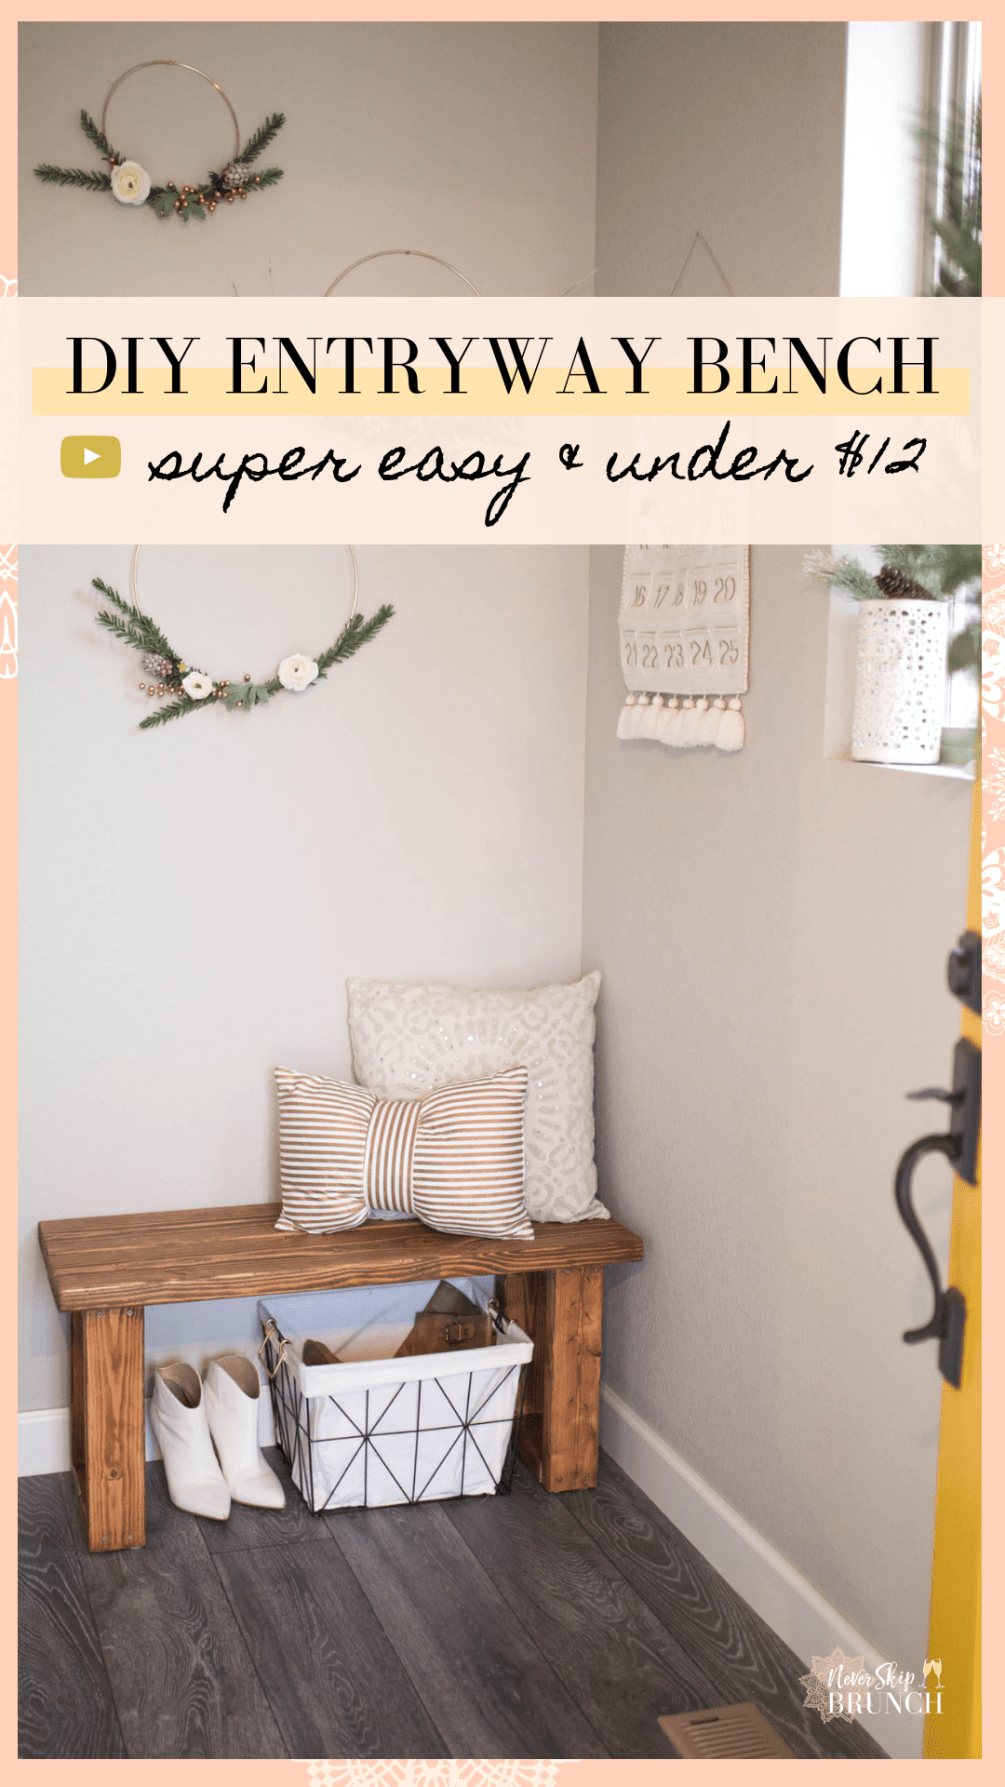 Pleasant Make This Gorgeous Diy Entryway Bench For Under 12 For Machost Co Dining Chair Design Ideas Machostcouk